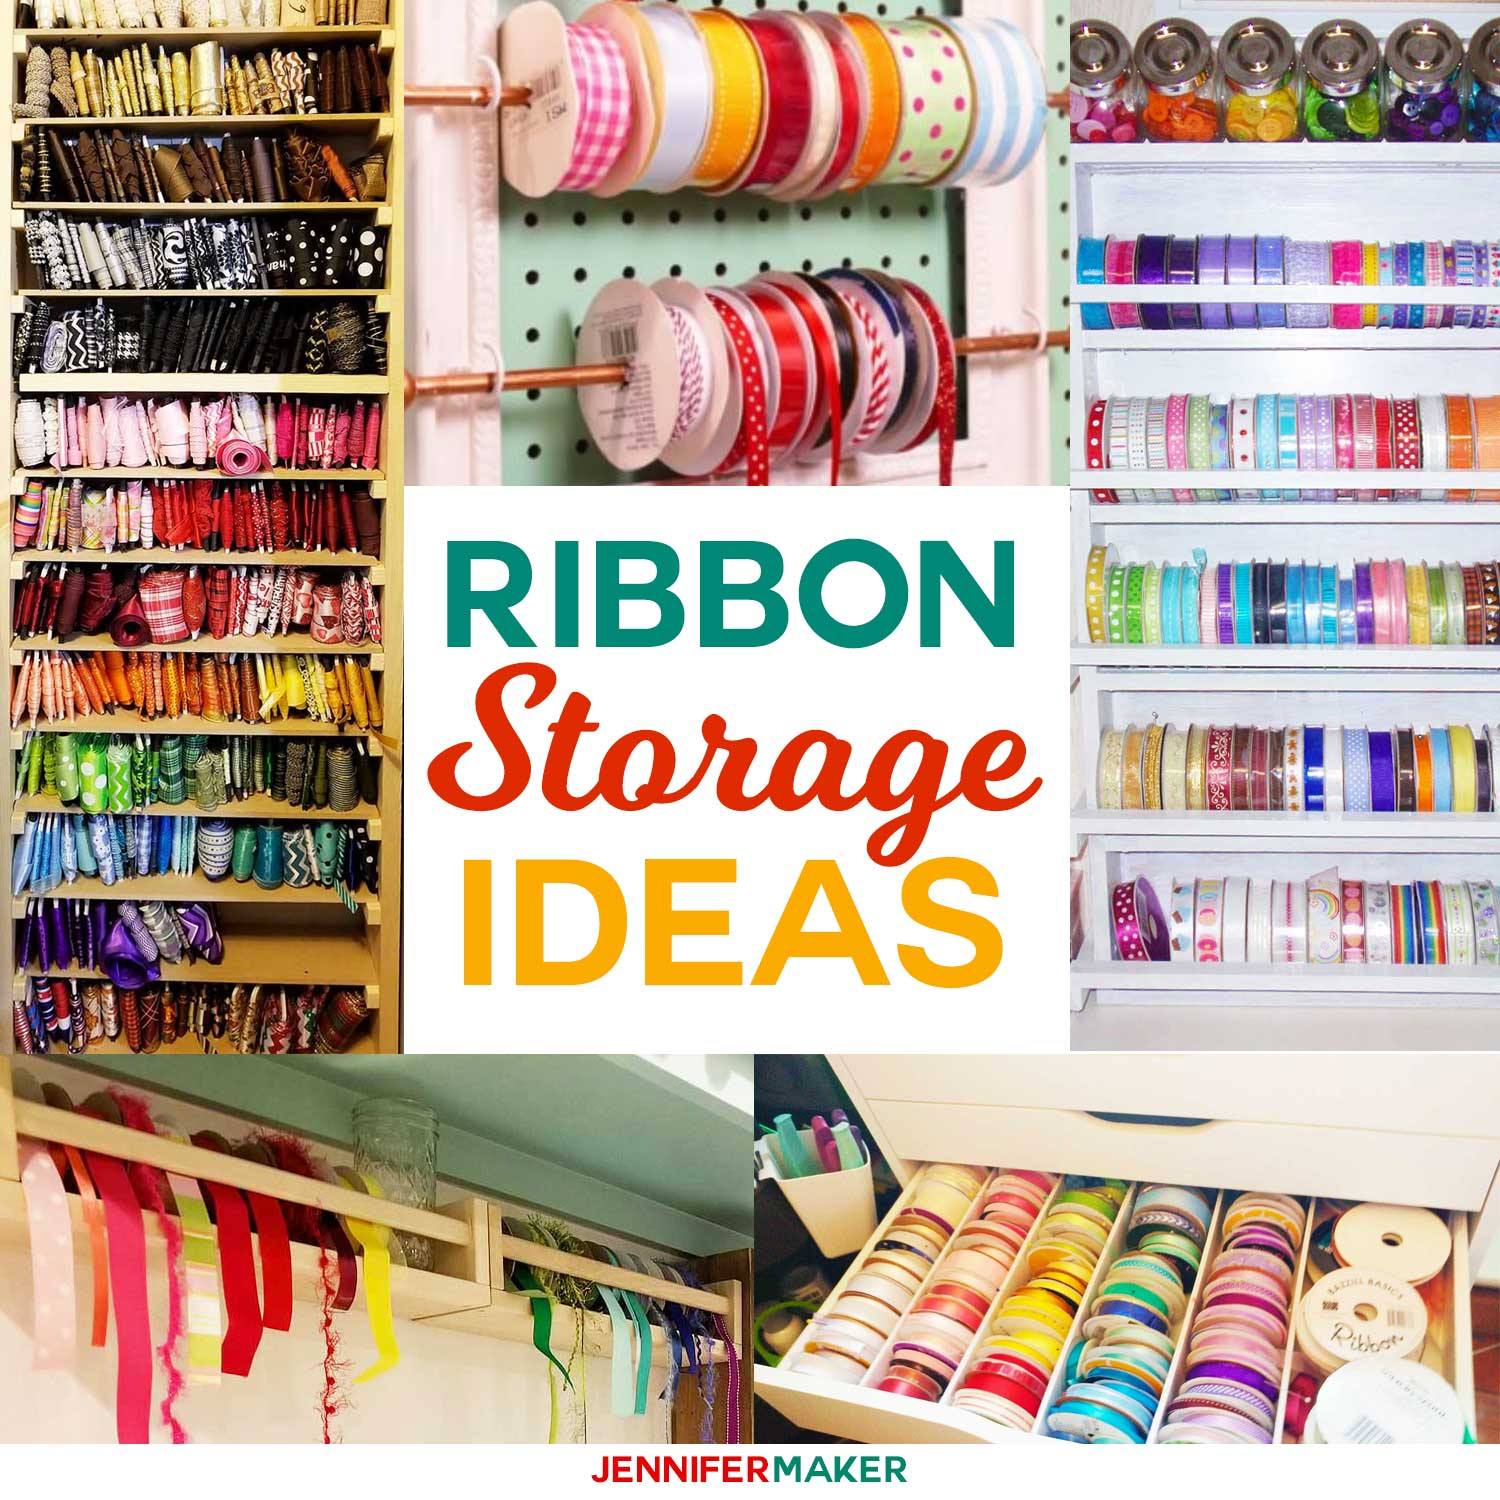 Diy Ribbon Storage Organizers Racks Shelves Jennifer Maker